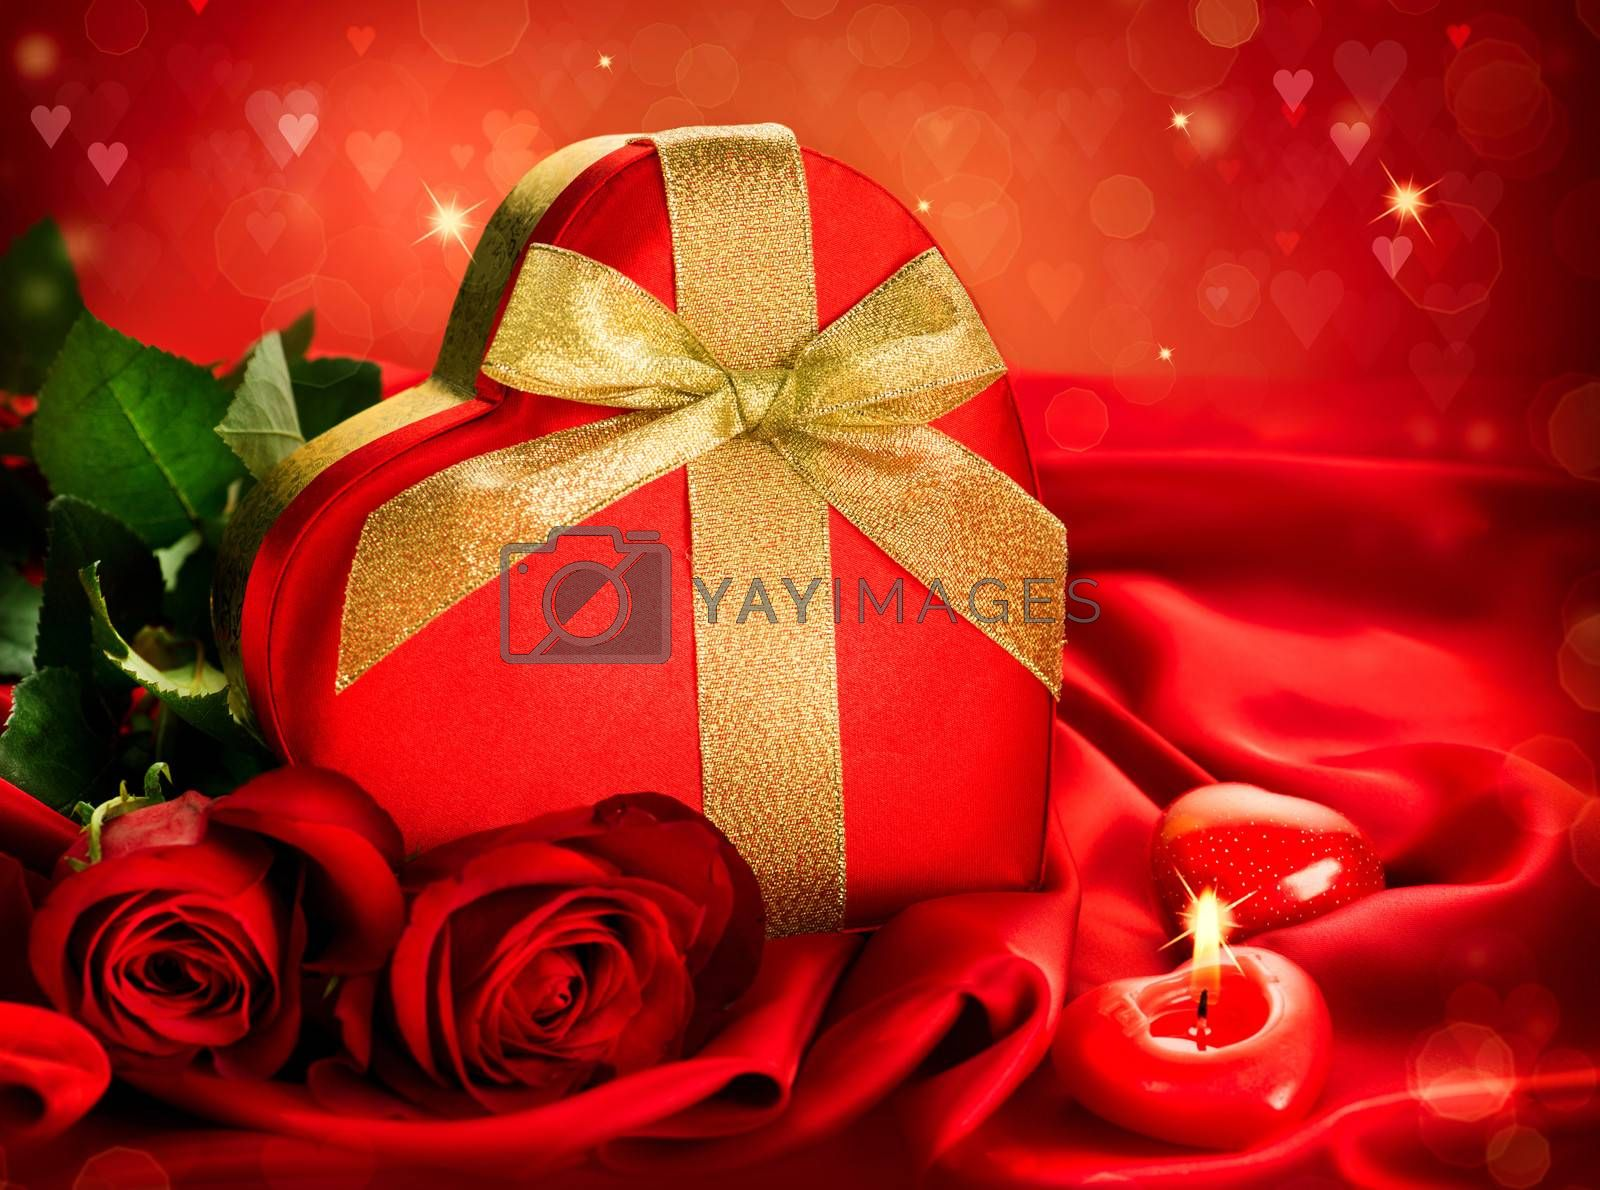 Valentine Red Hear Gift and Red Rose Flower over Red Silk